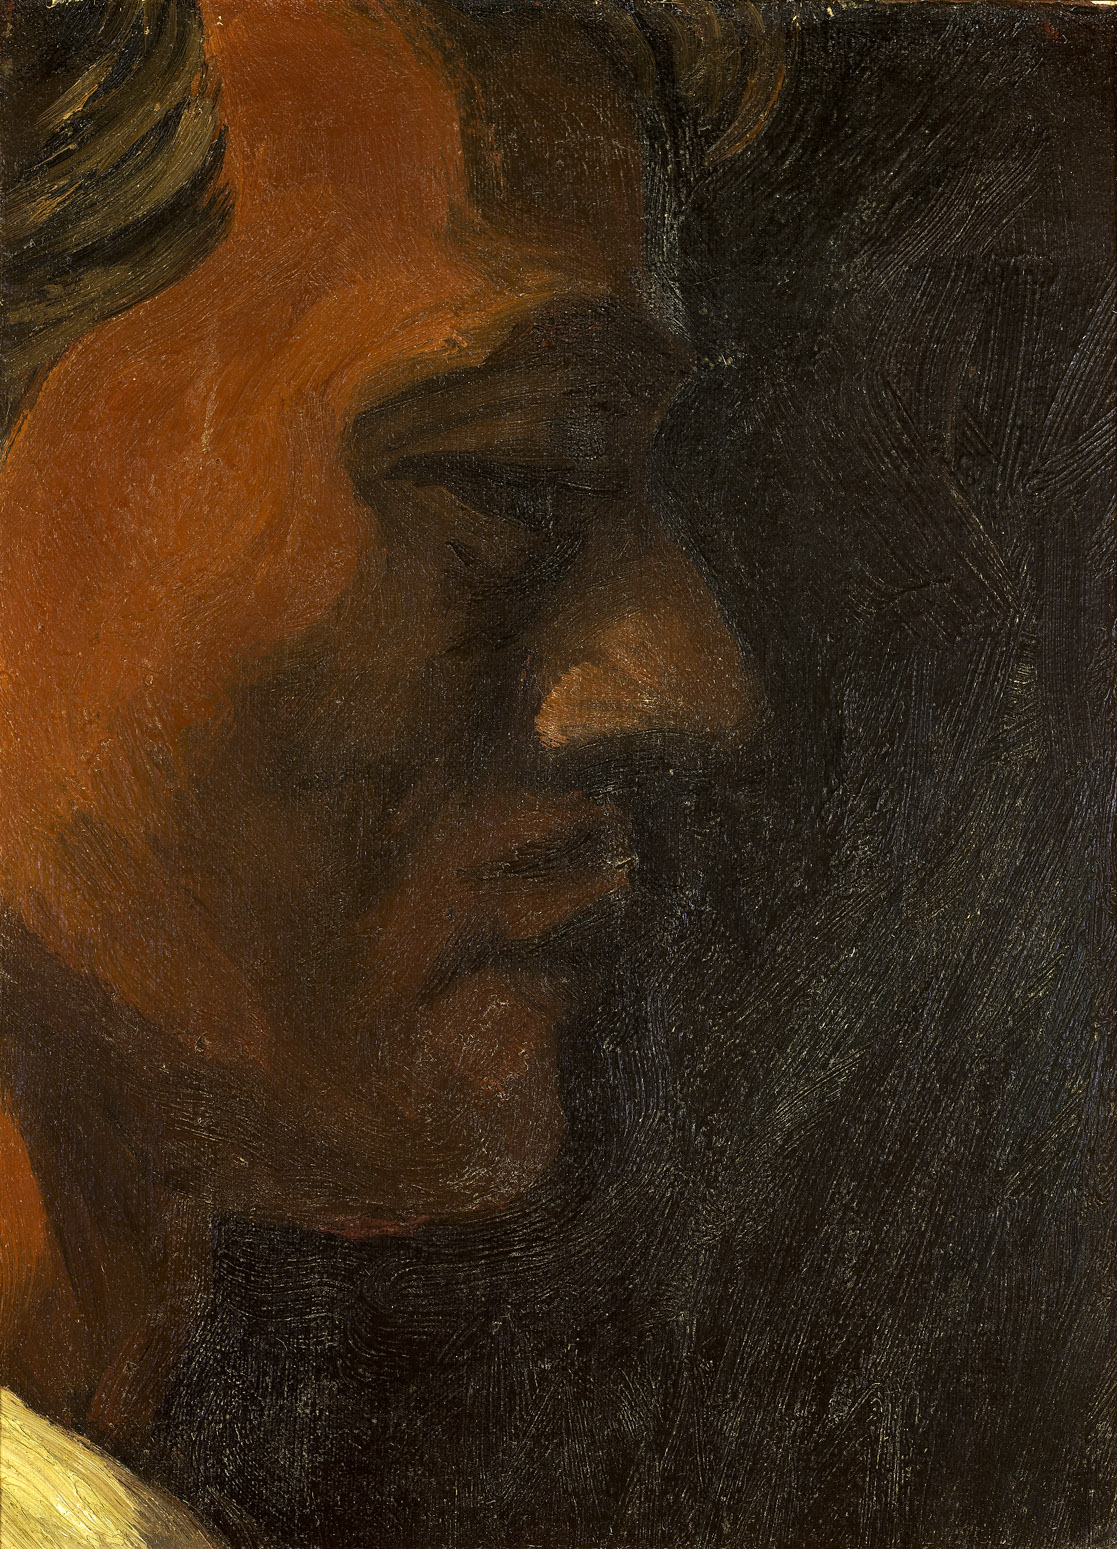 Self Portrait , 1943  Oil on Board 15 1/2 x 9 inches; 39.4 x 23 centimeters